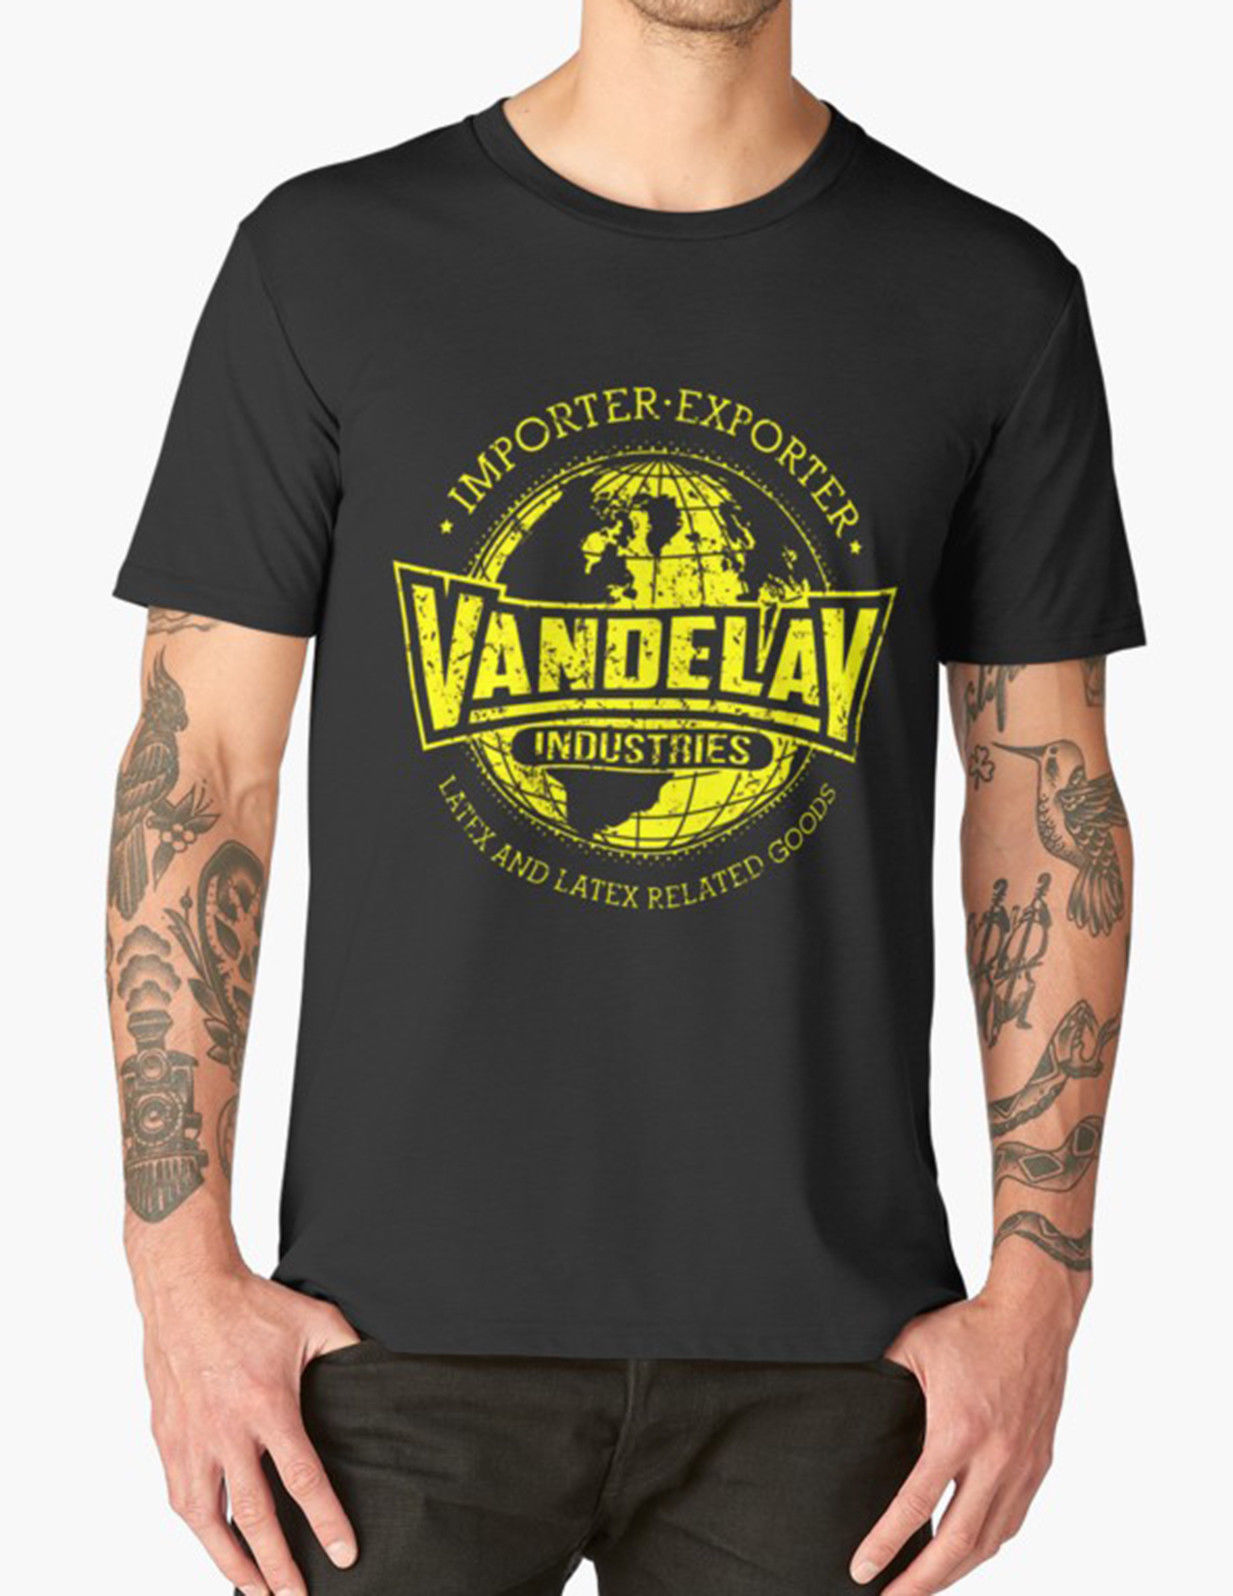 Seinfeld T Shirt Vandelay Industries In Shirts From Mens Clothing Accessories On Aliexpress